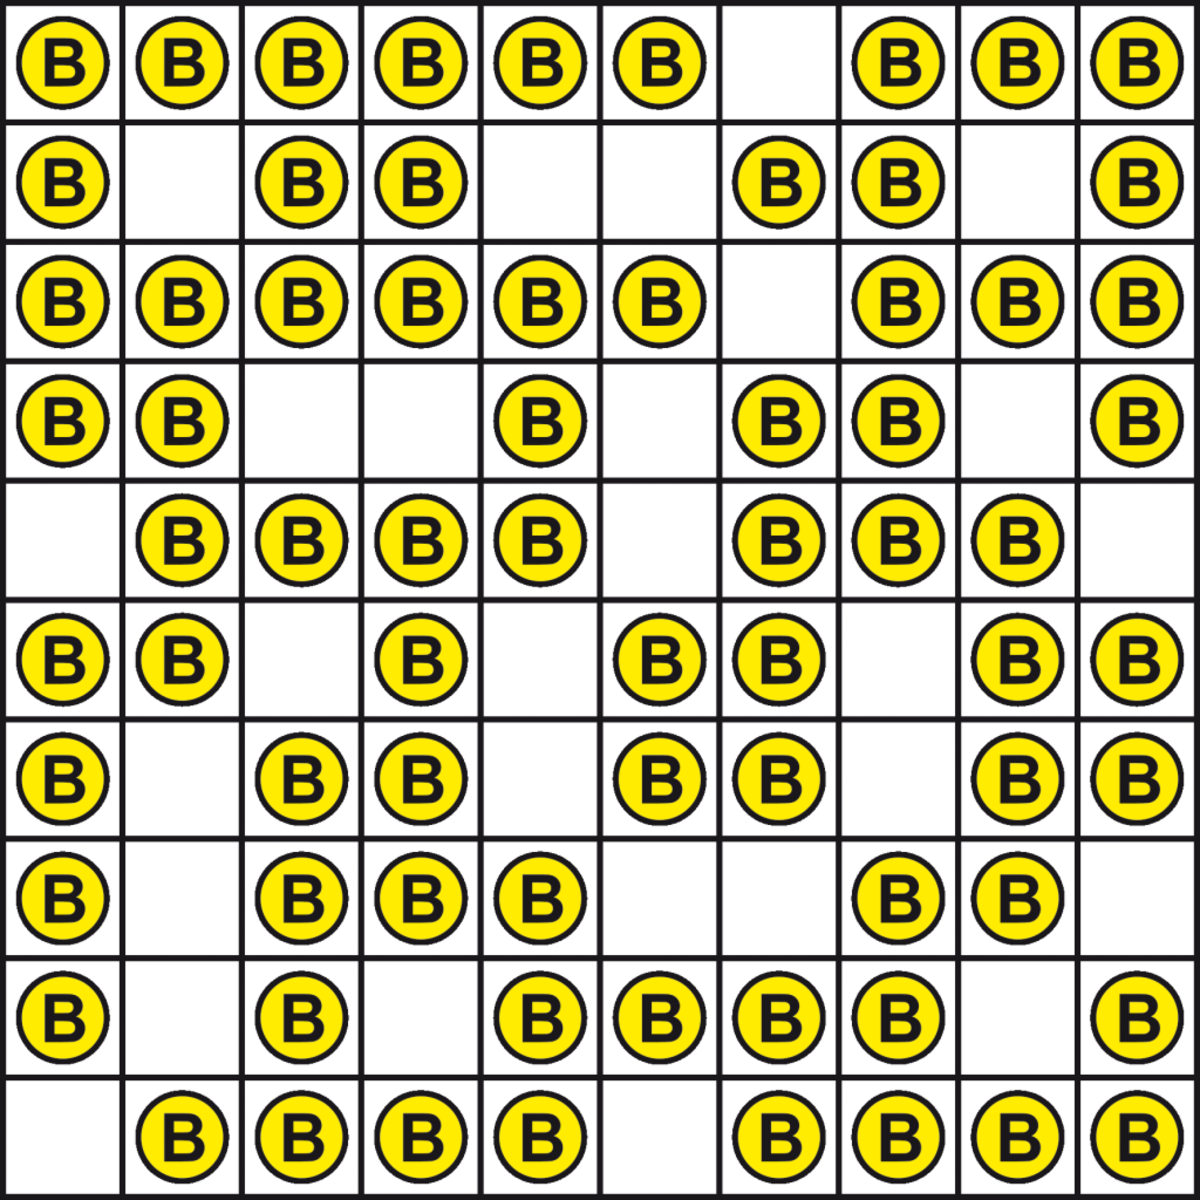 FIGURE 5: field with some empty cells